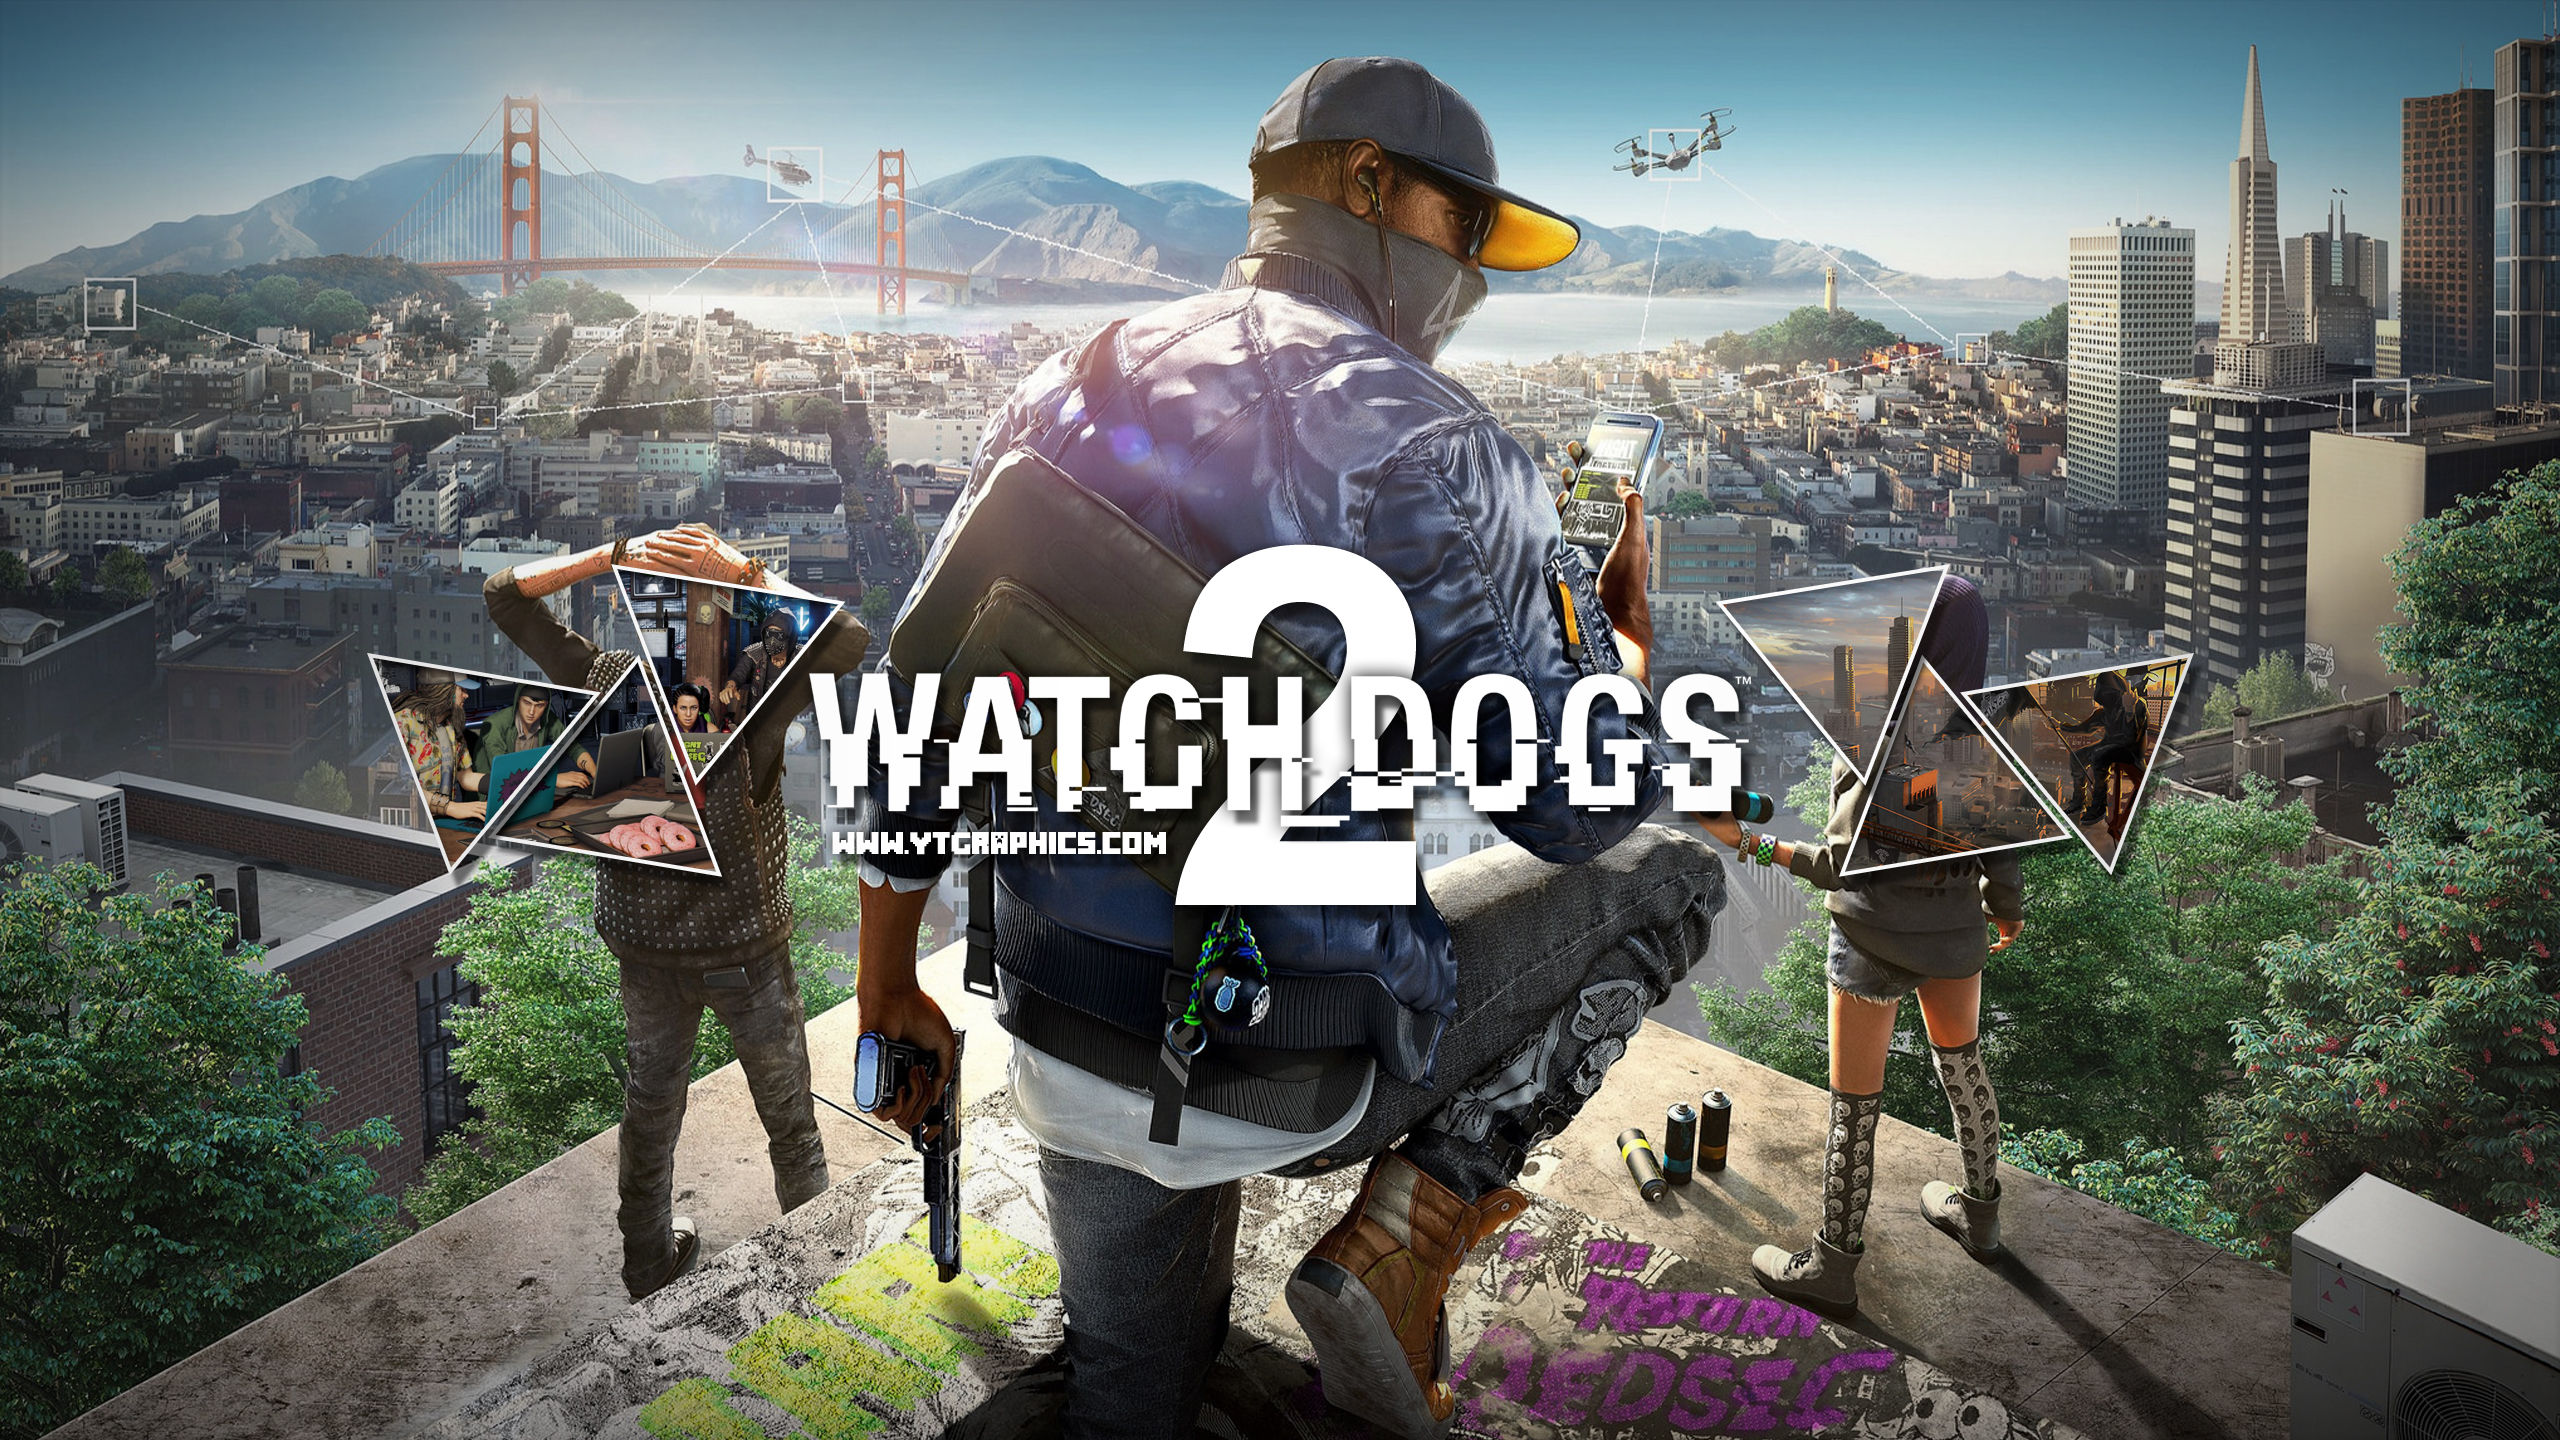 Pictures Of Watch Dogs 2: Watch Dogs 2 Free Download